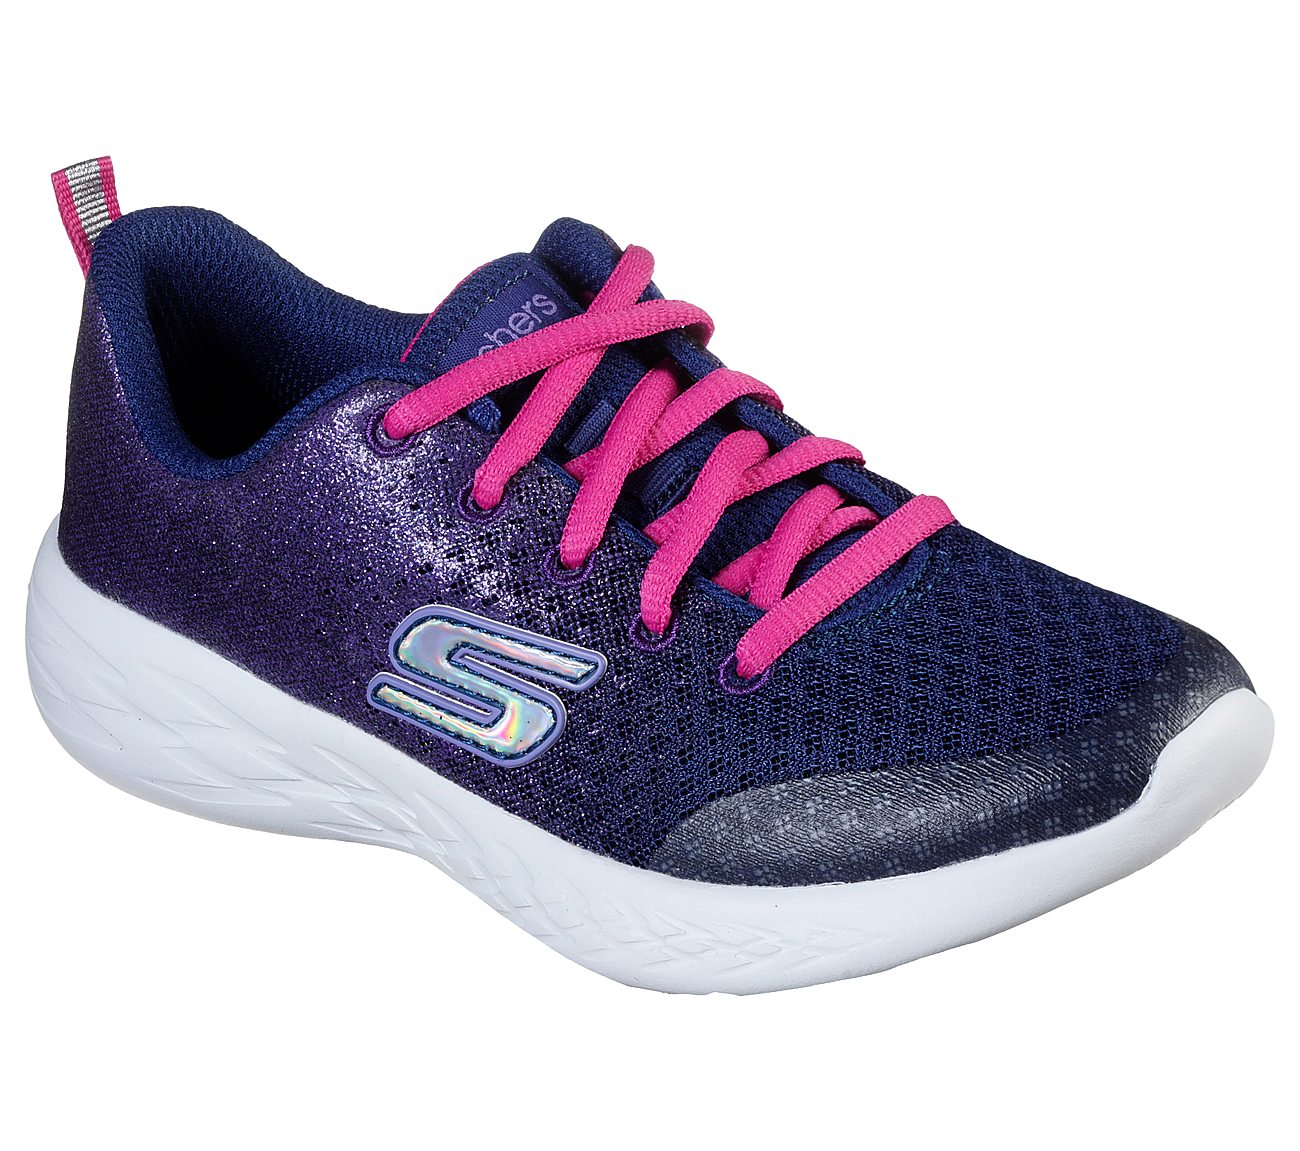 Skechers GOrun 600 - Sparkle Speed